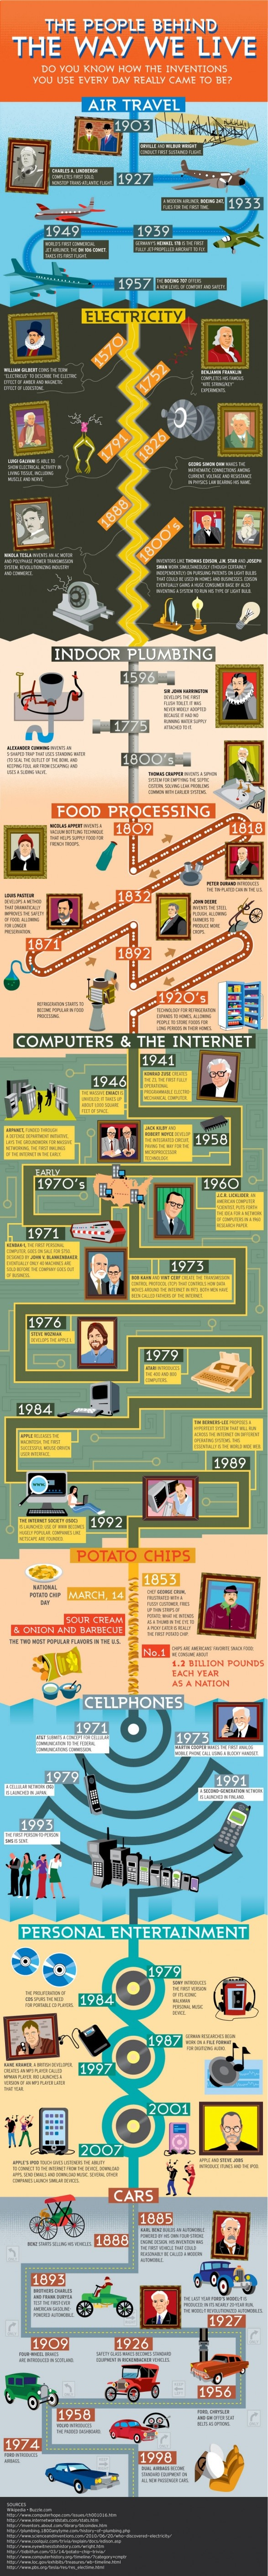 Technology and influence...